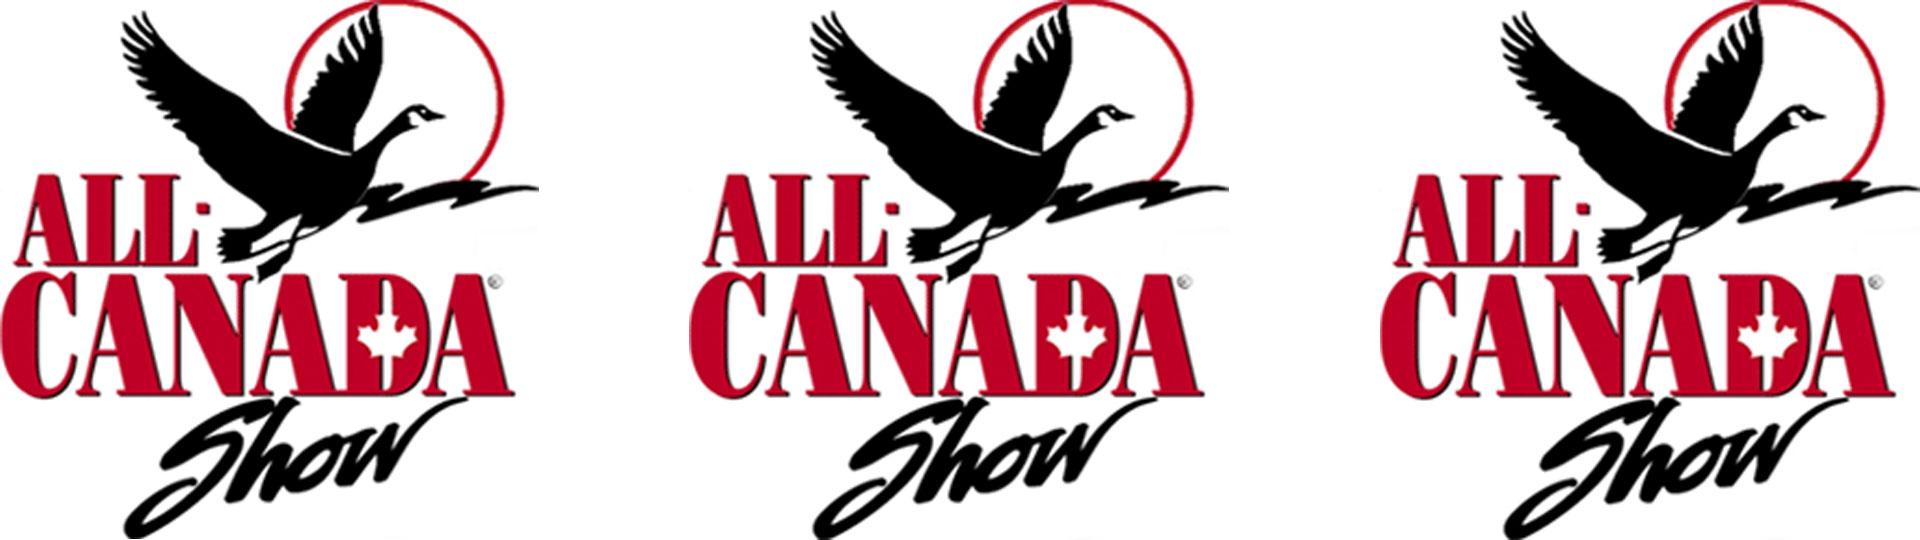 CONTEST: The All Canada Show